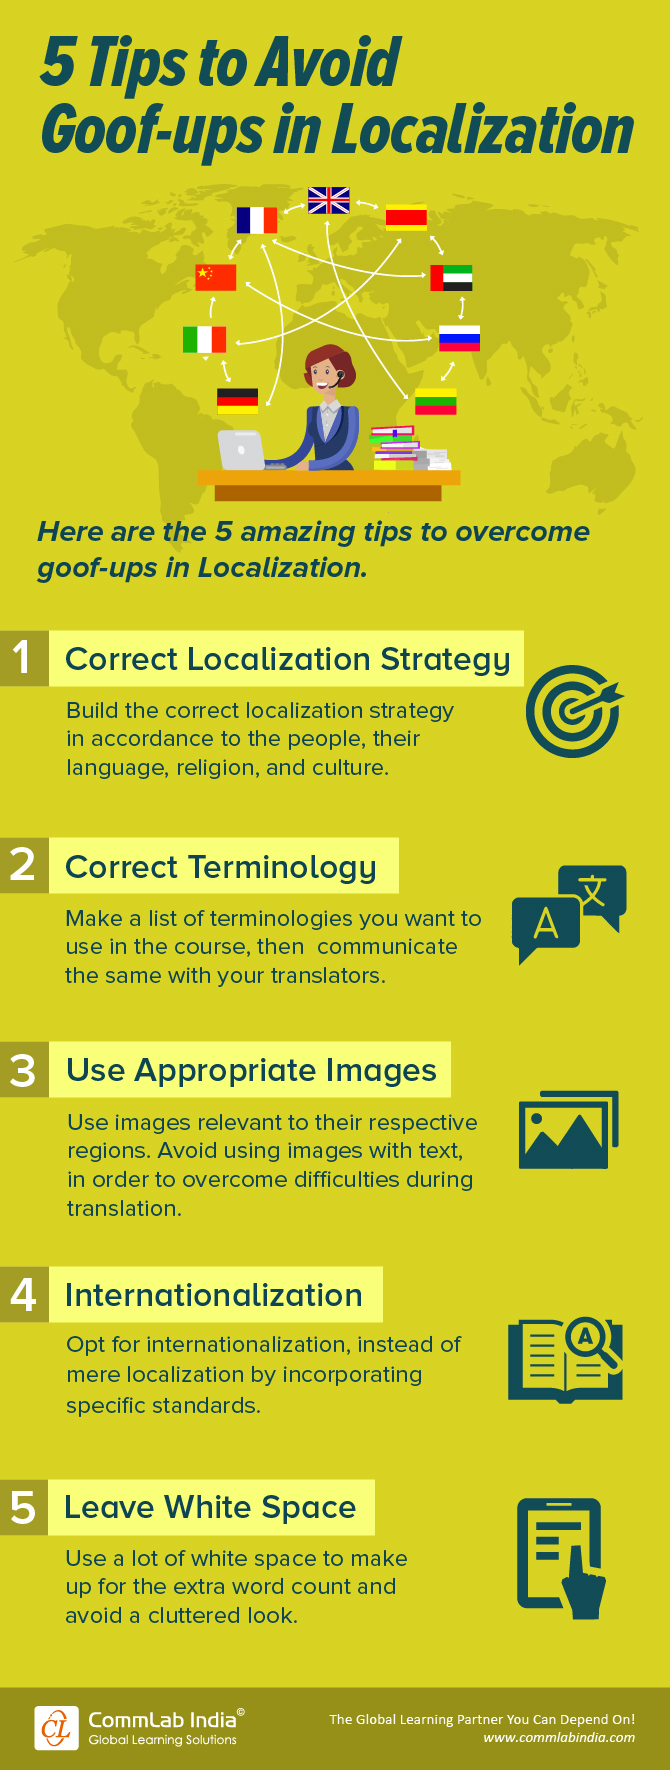 5 Tips to Avoid Goof-ups in Localization [Infographic]